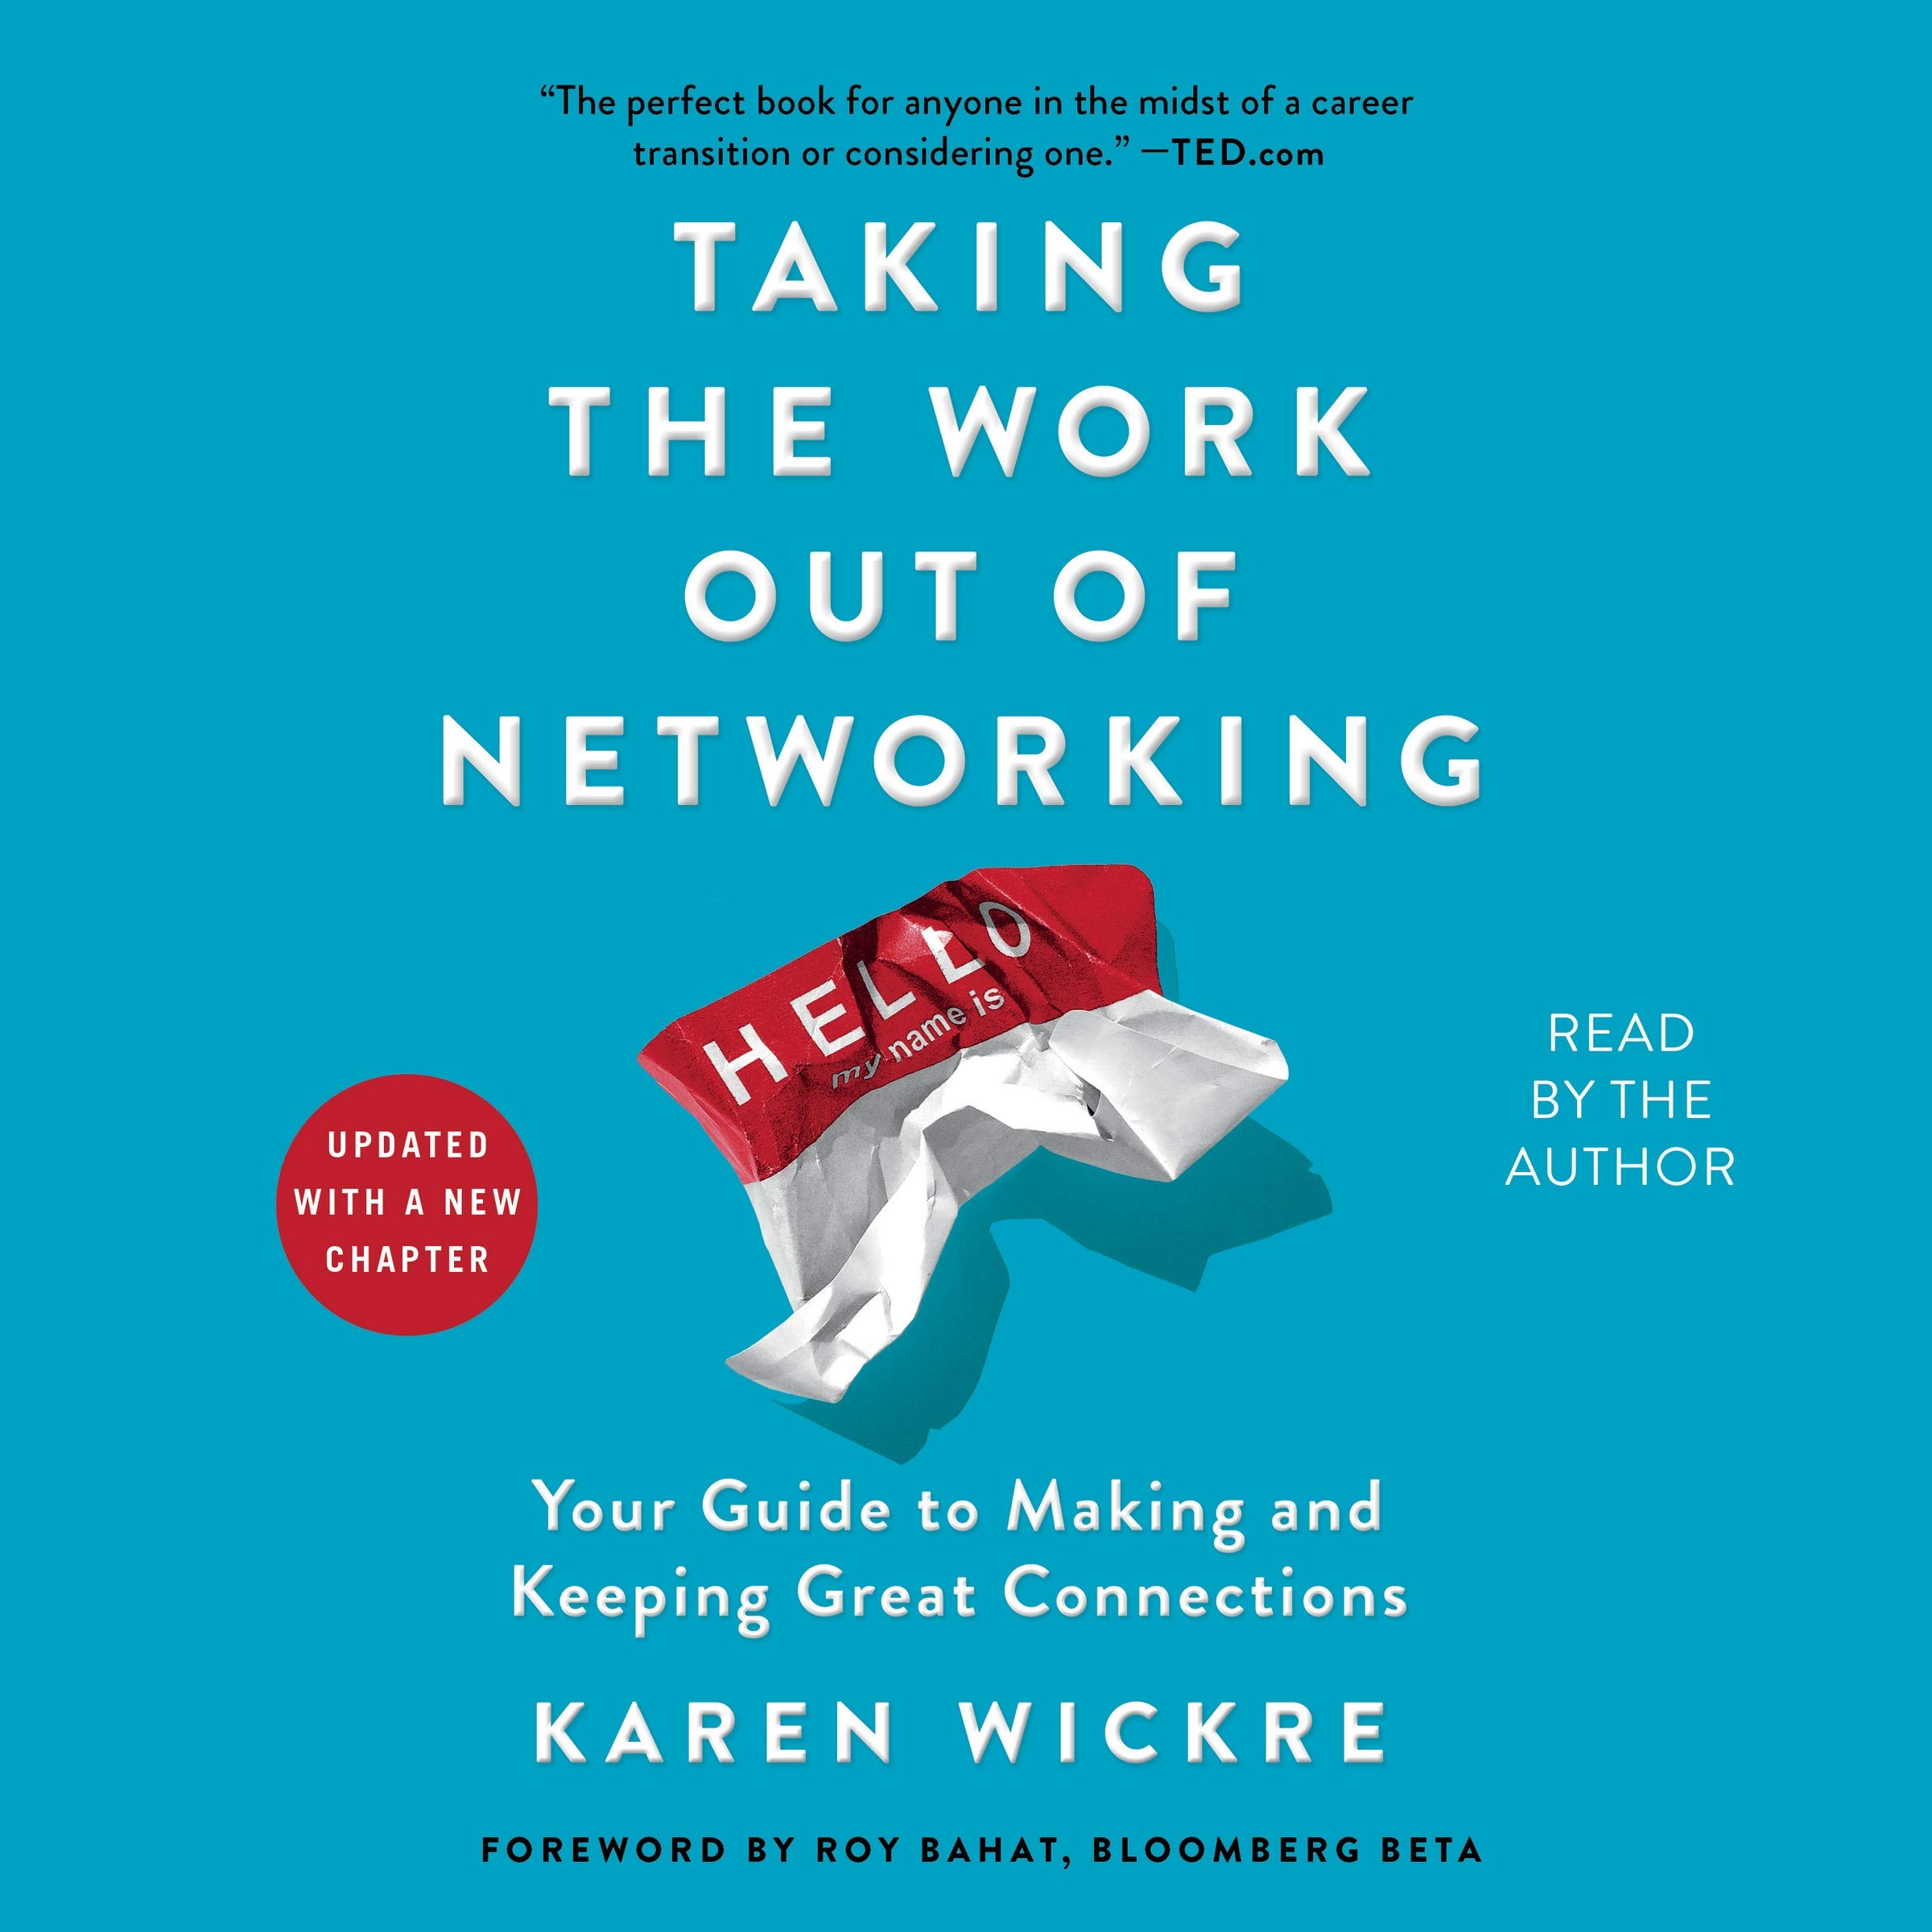 Taking the Work Out of Networking: An Introvert's Guide to Making  Connections That Count: Karen Wickre: 9781508278412: Amazon.com: Books